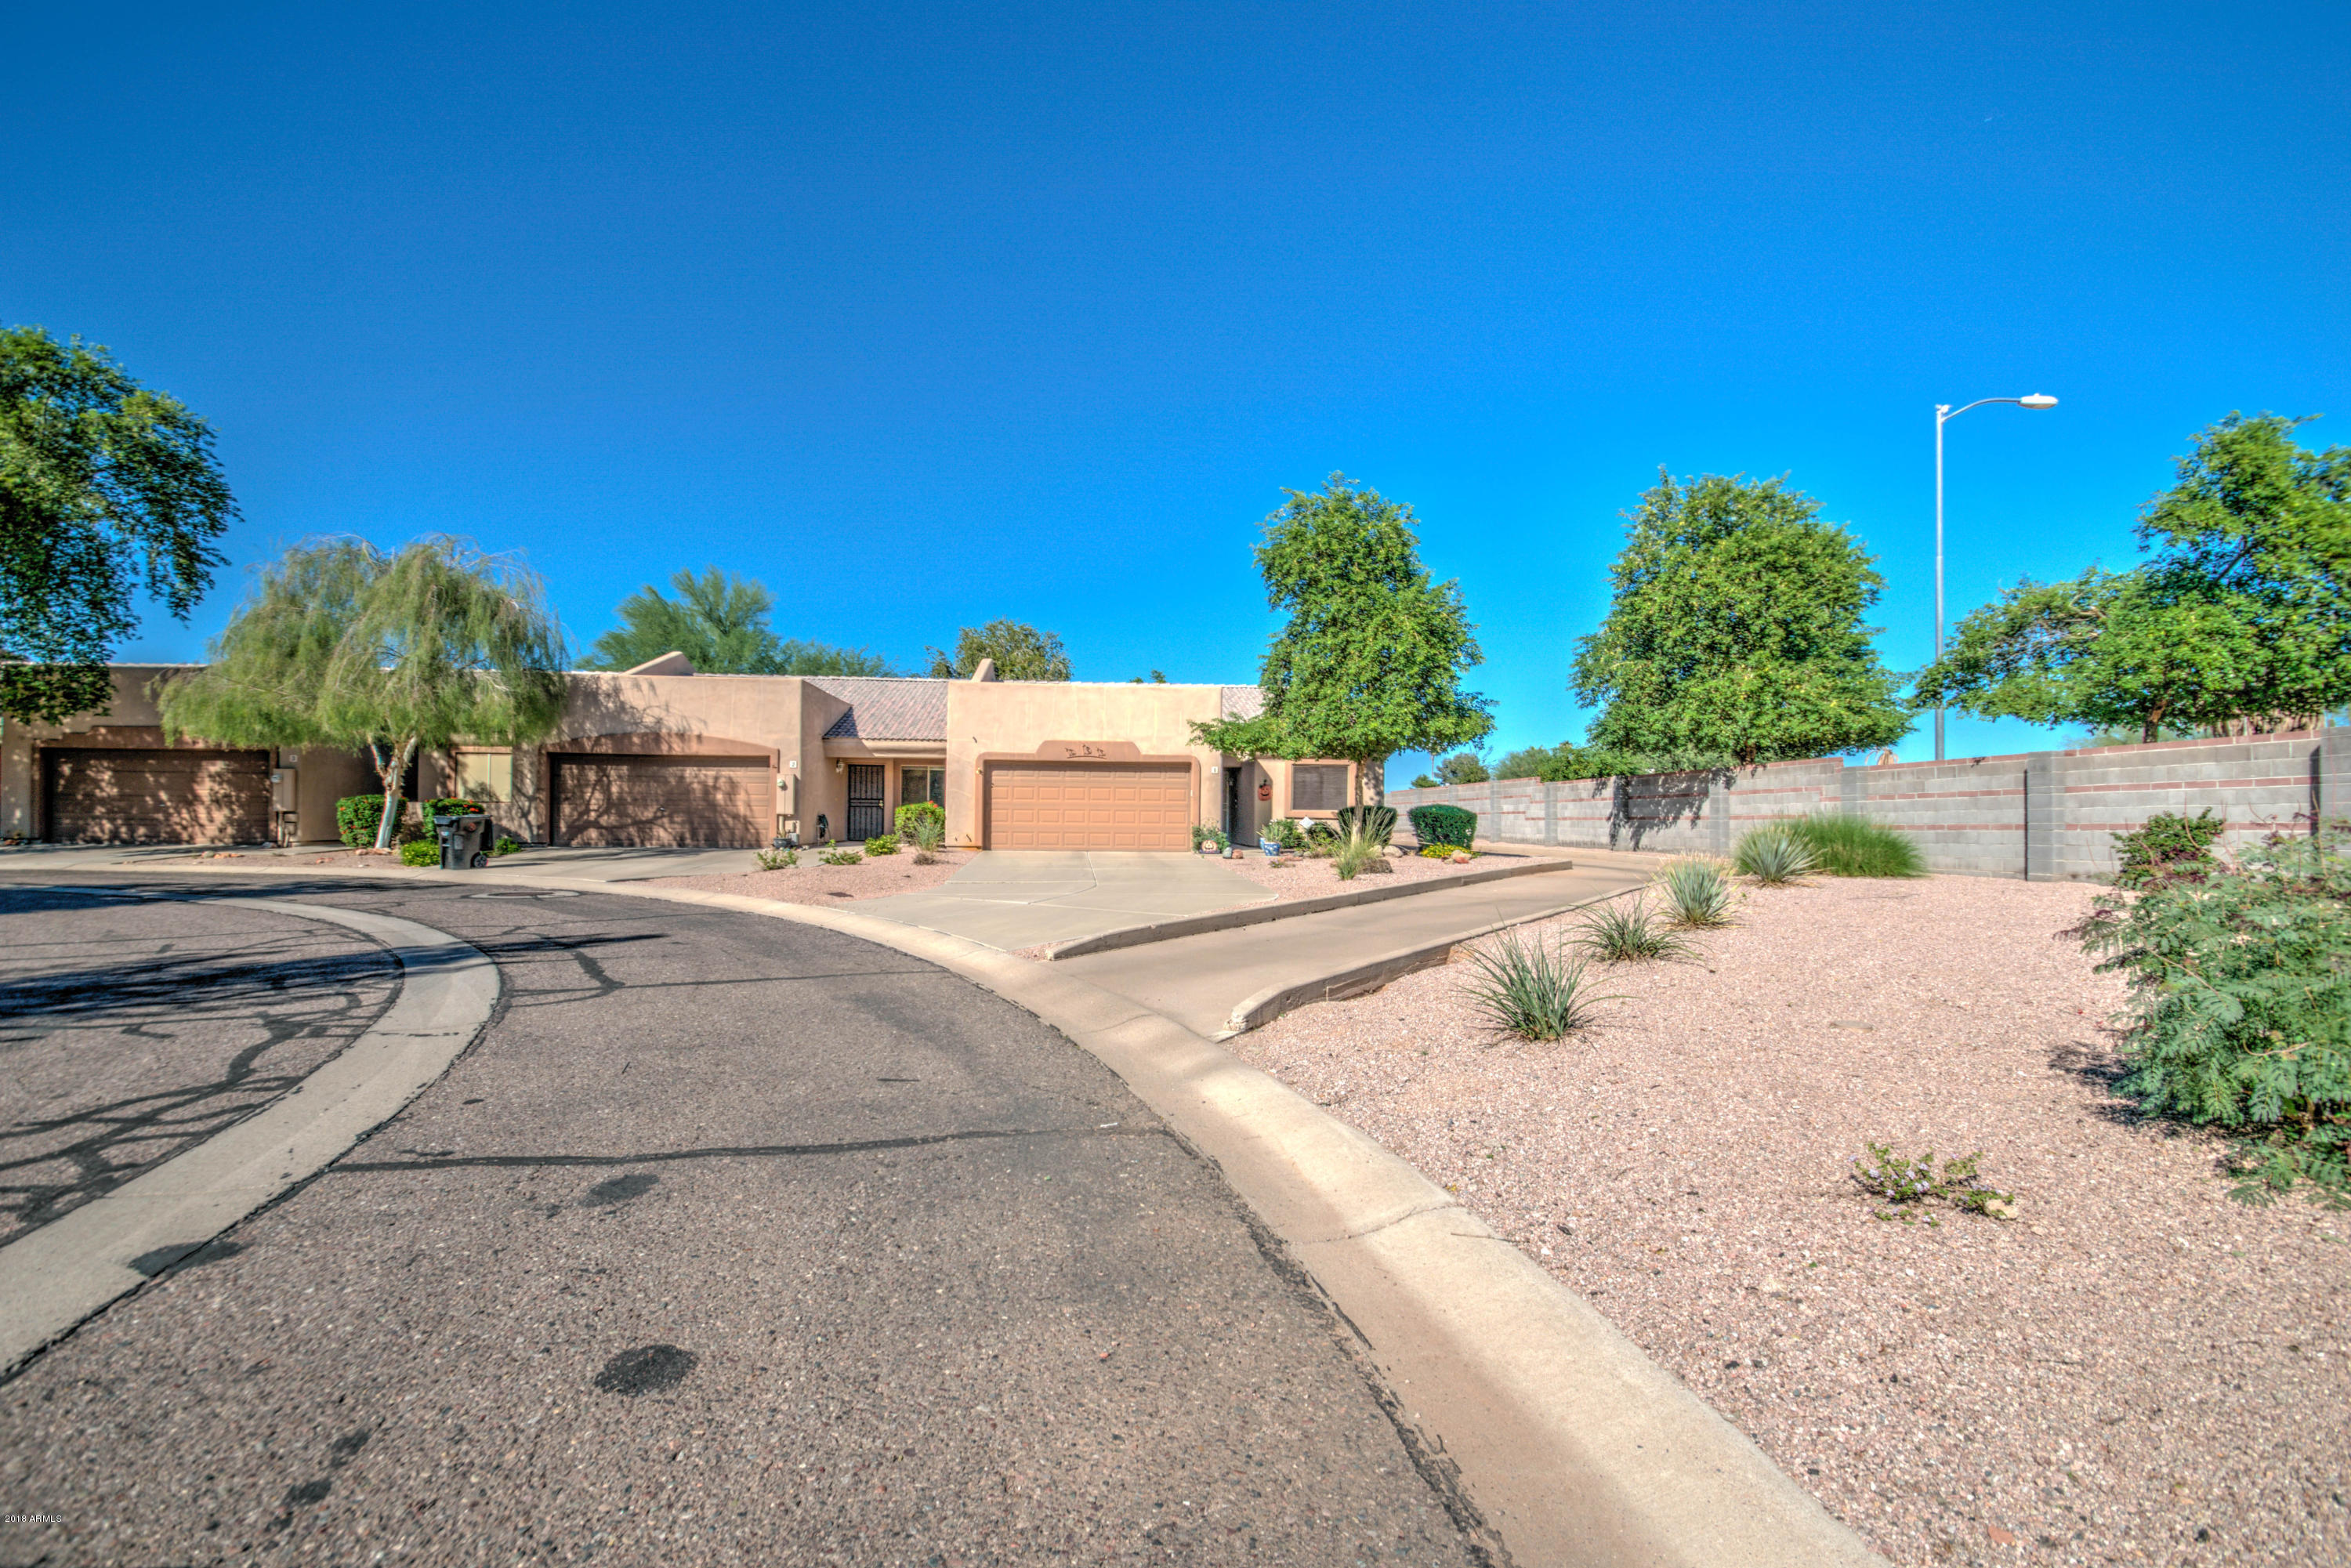 Photo of 64 N 63RD Street #1, Mesa, AZ 85205